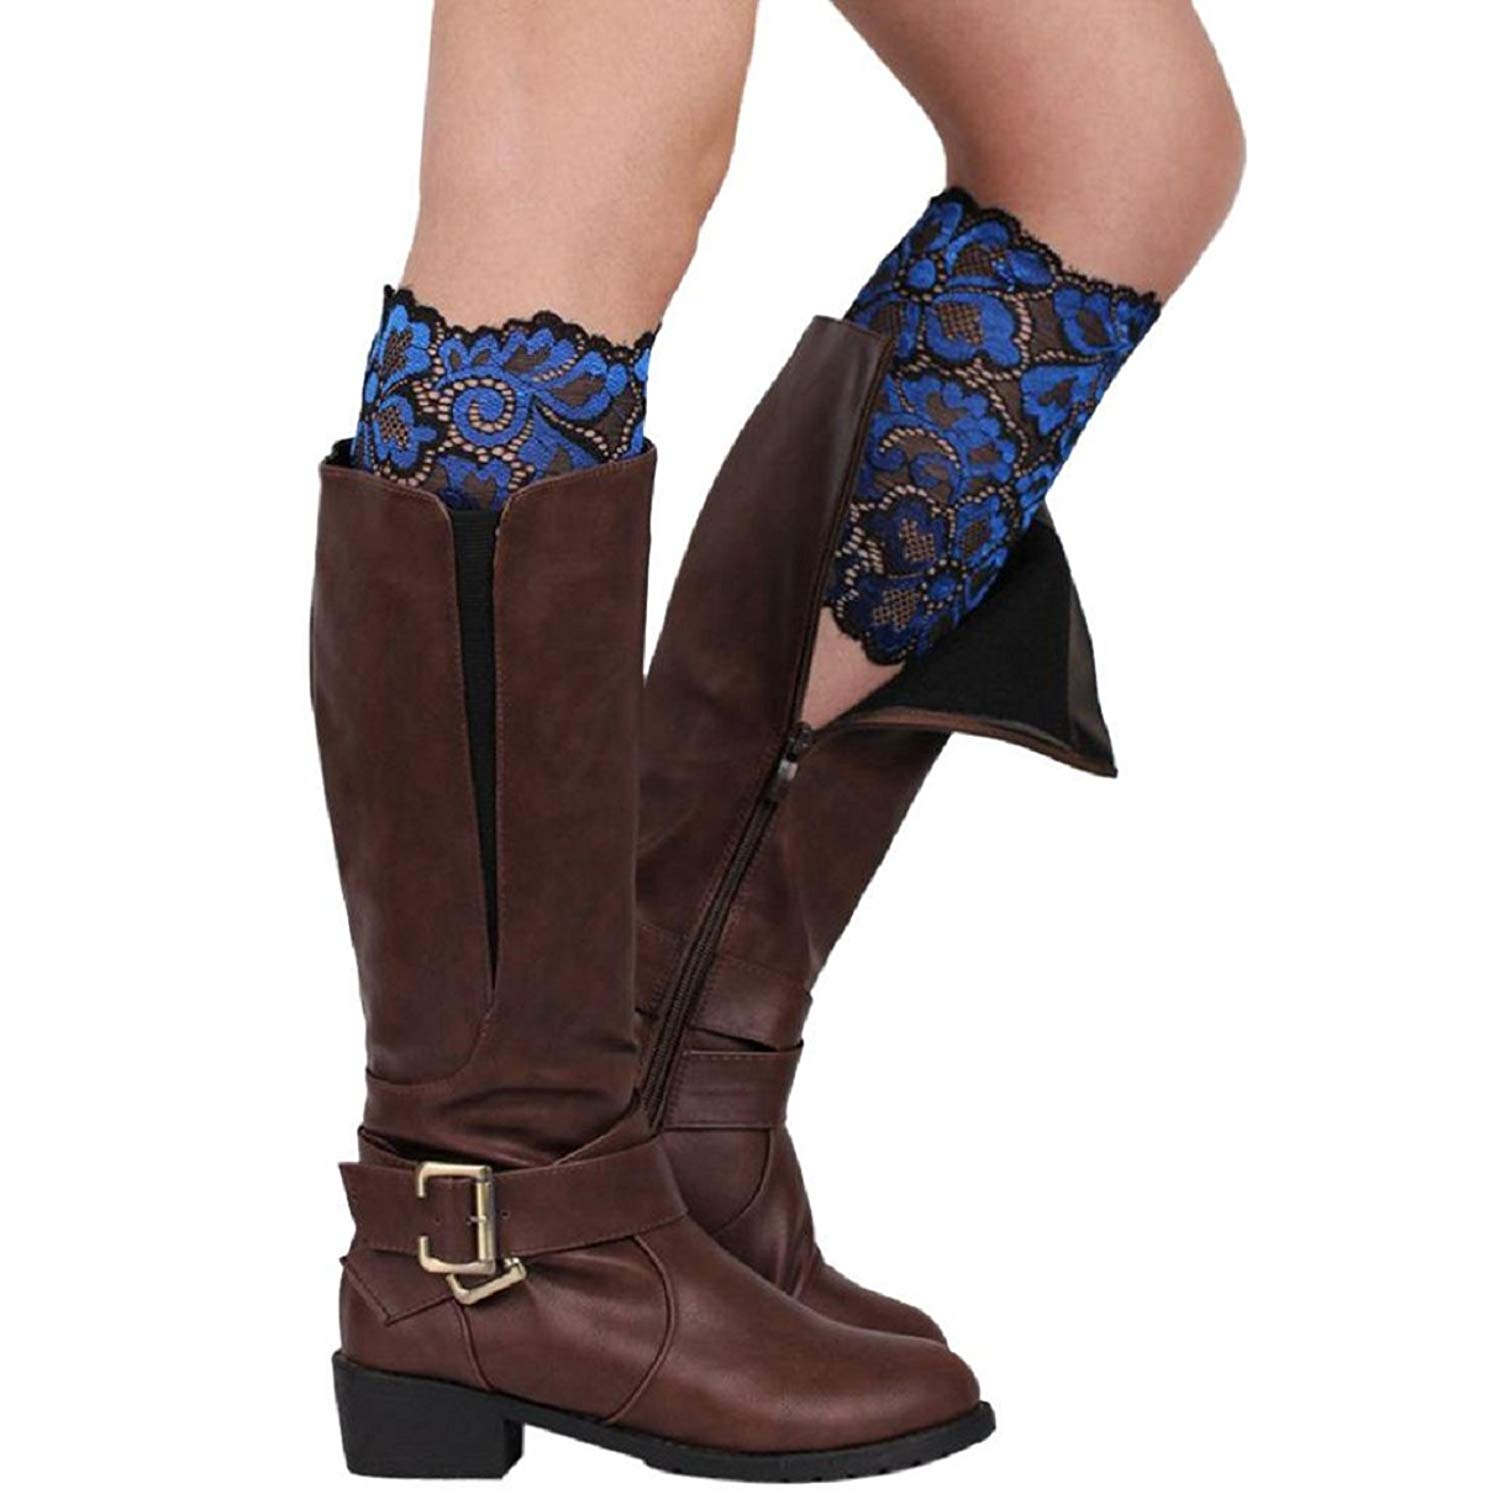 Tonsee Womens Stretch Lace Boot Leg Cuffs Soft Laced Boot Socks